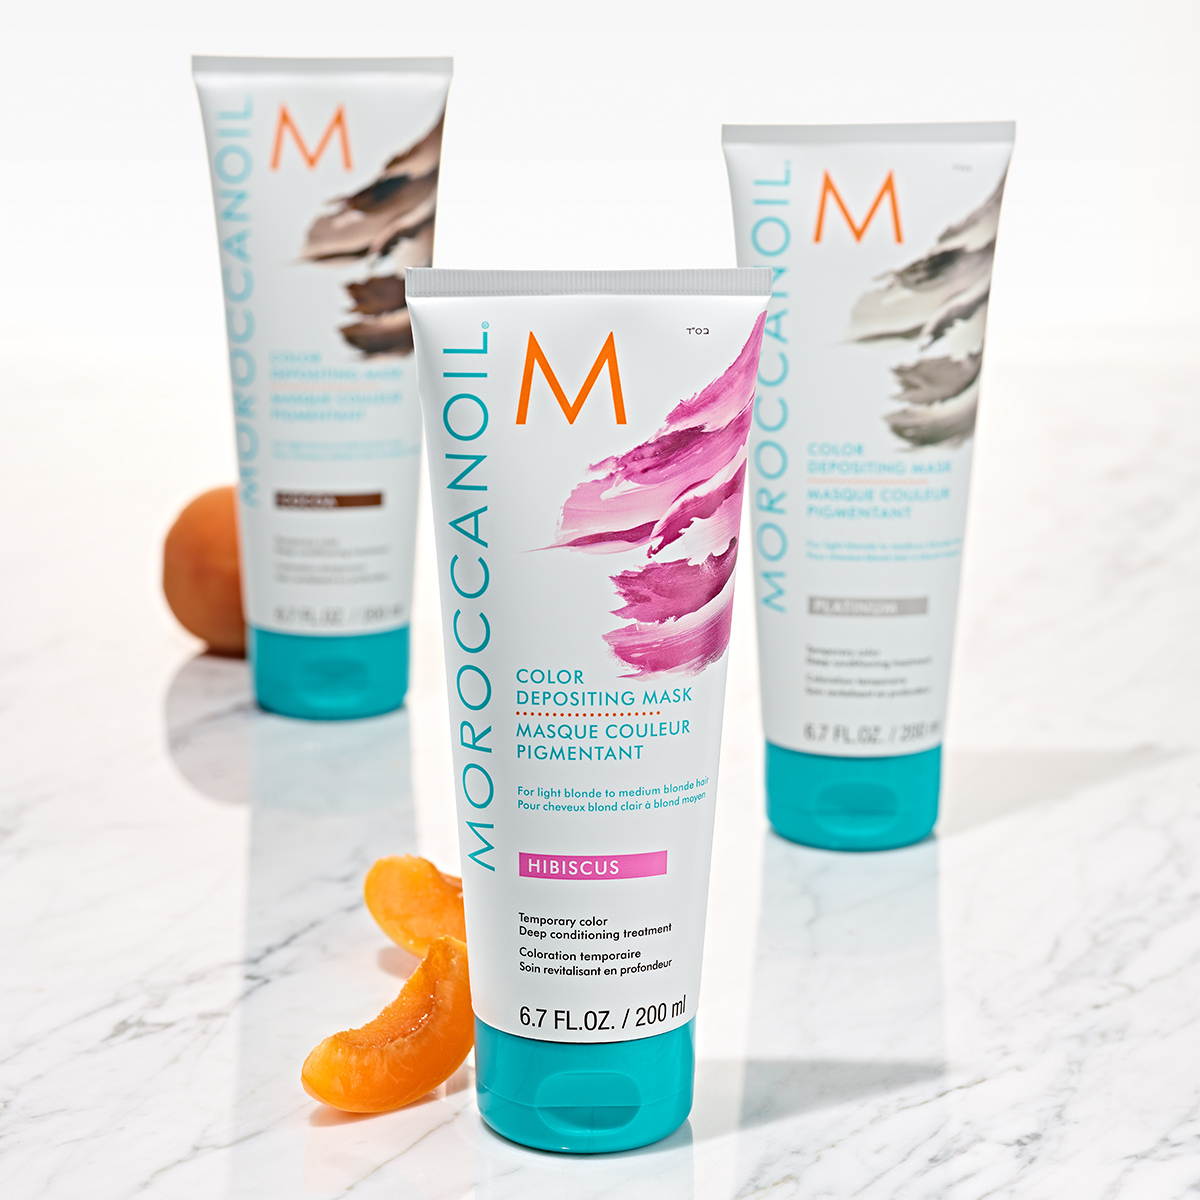 Moroccanoil - Color dispositing mask